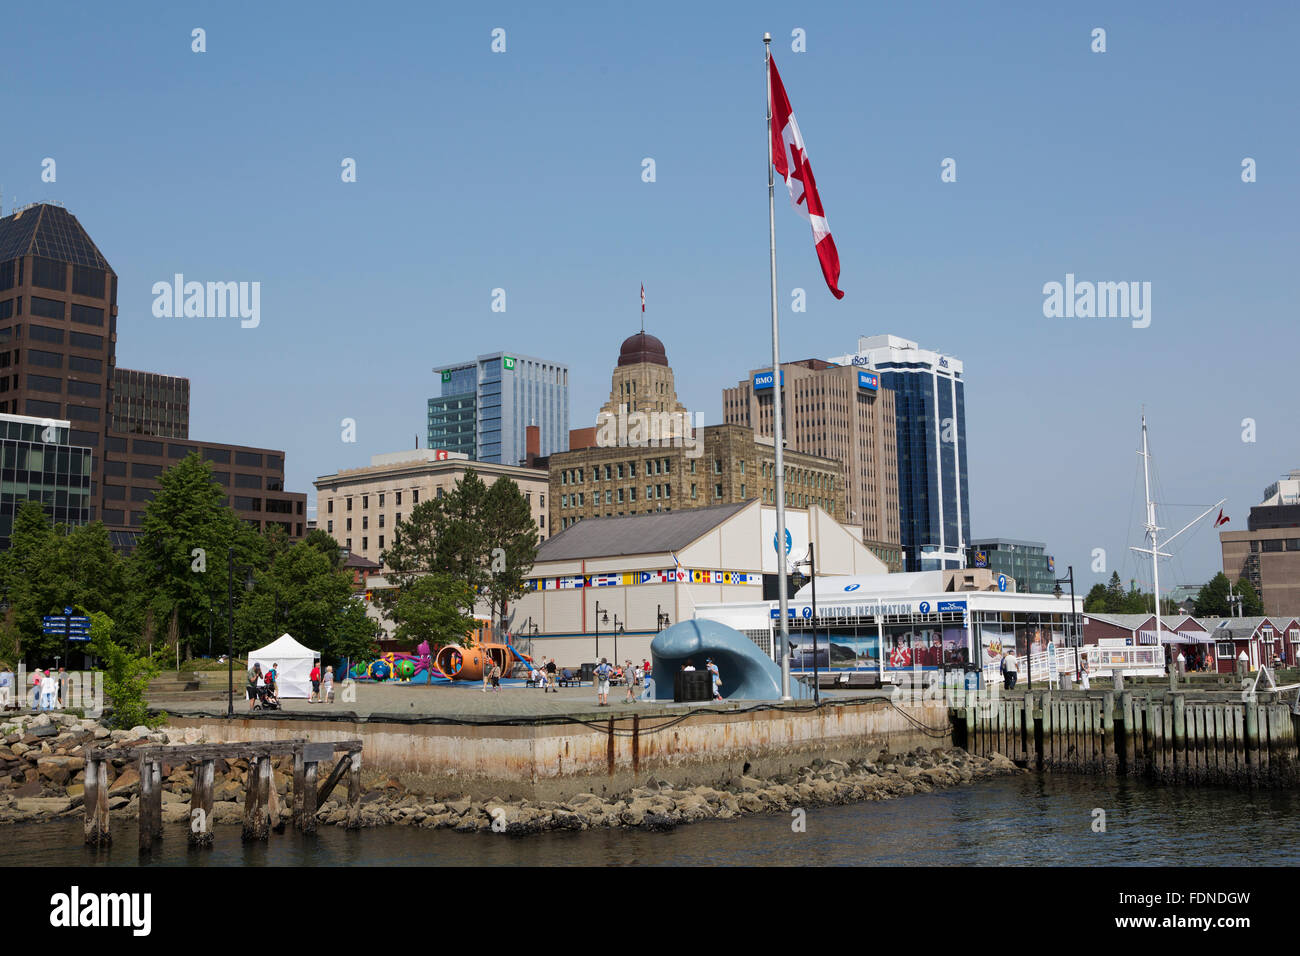 A Canadian flag on a flagpole by the waterfront in Halifax, Canada. - Stock Image